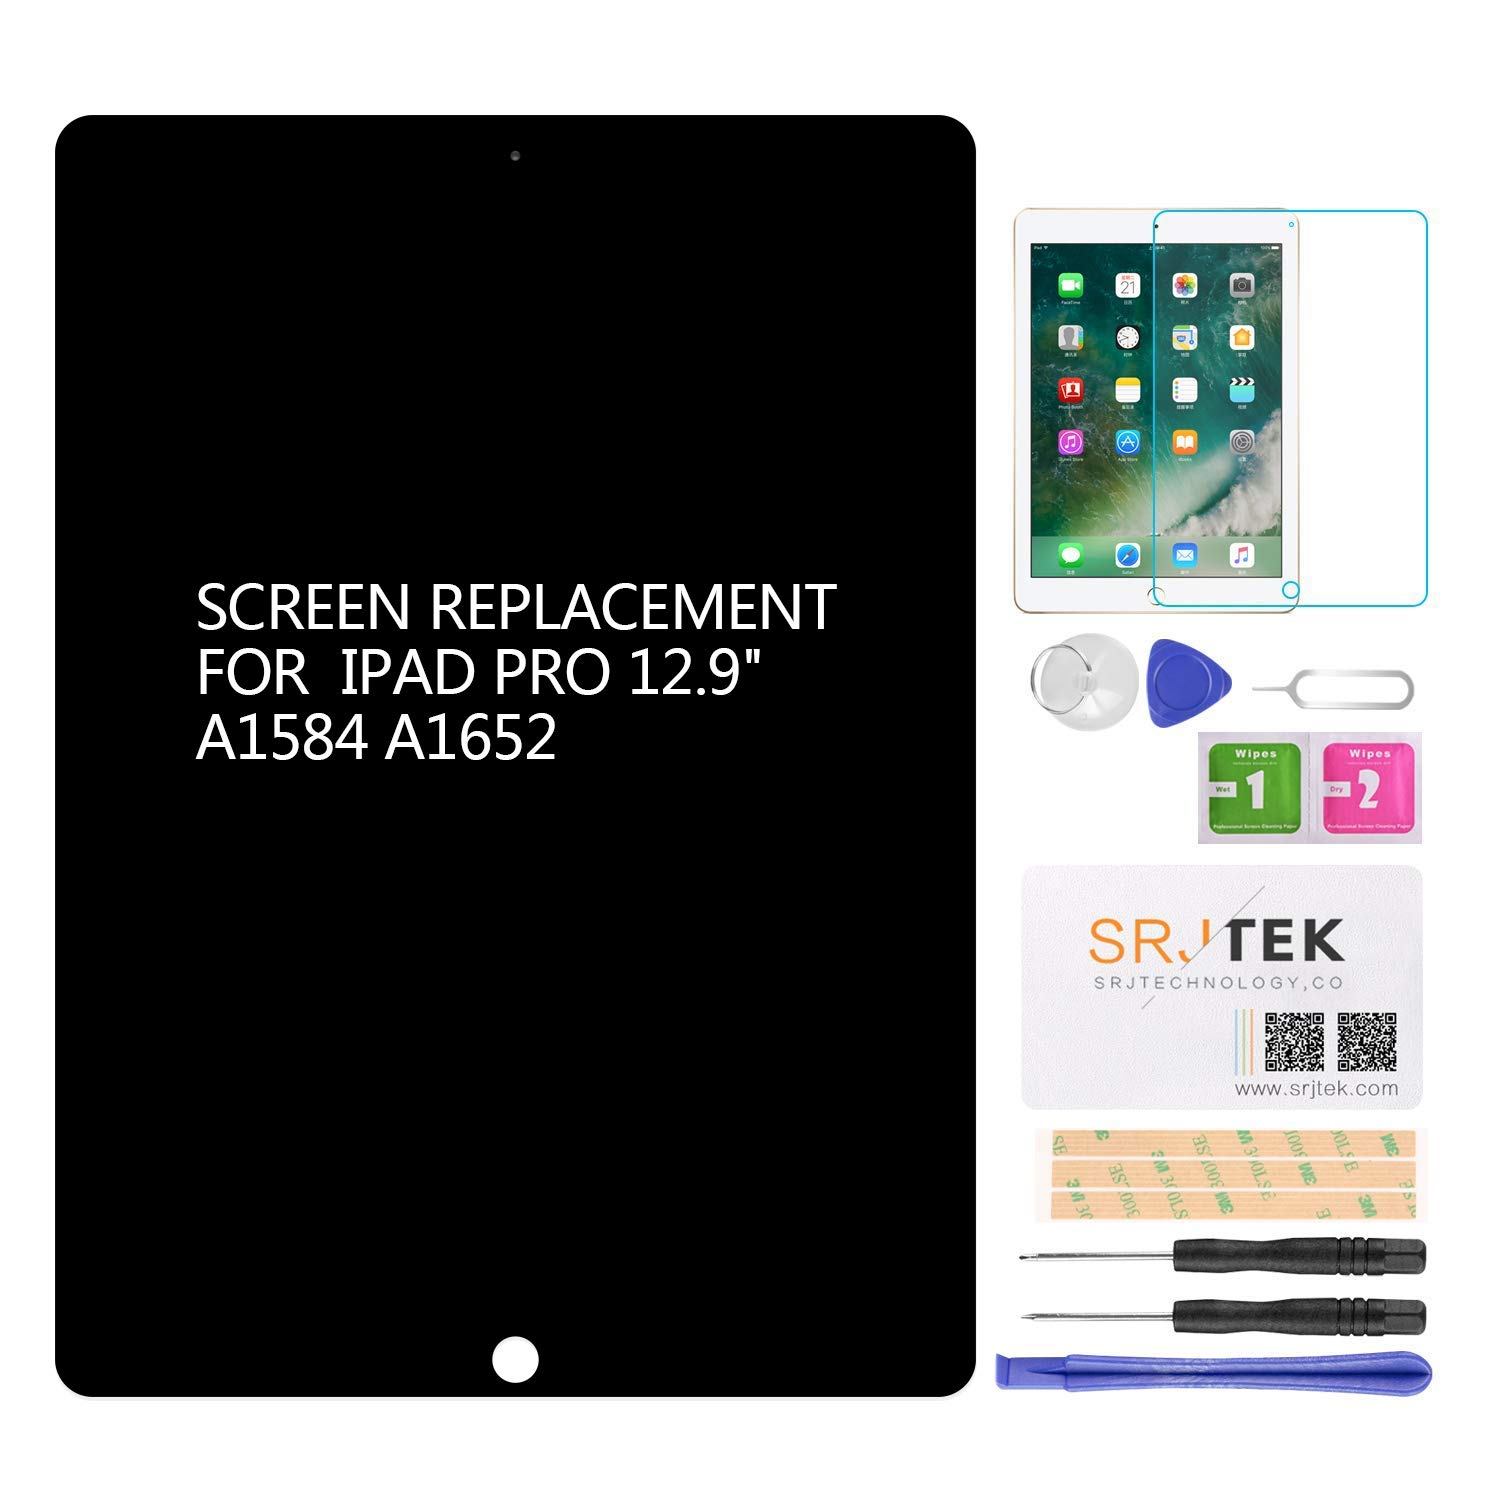 for iPad Pro 12.9 A1584 A1652 Screen Replacement LCD Display Touch Screen Digitizer + IC Connector PCB Flex Cable Assembly (2015) (Black)